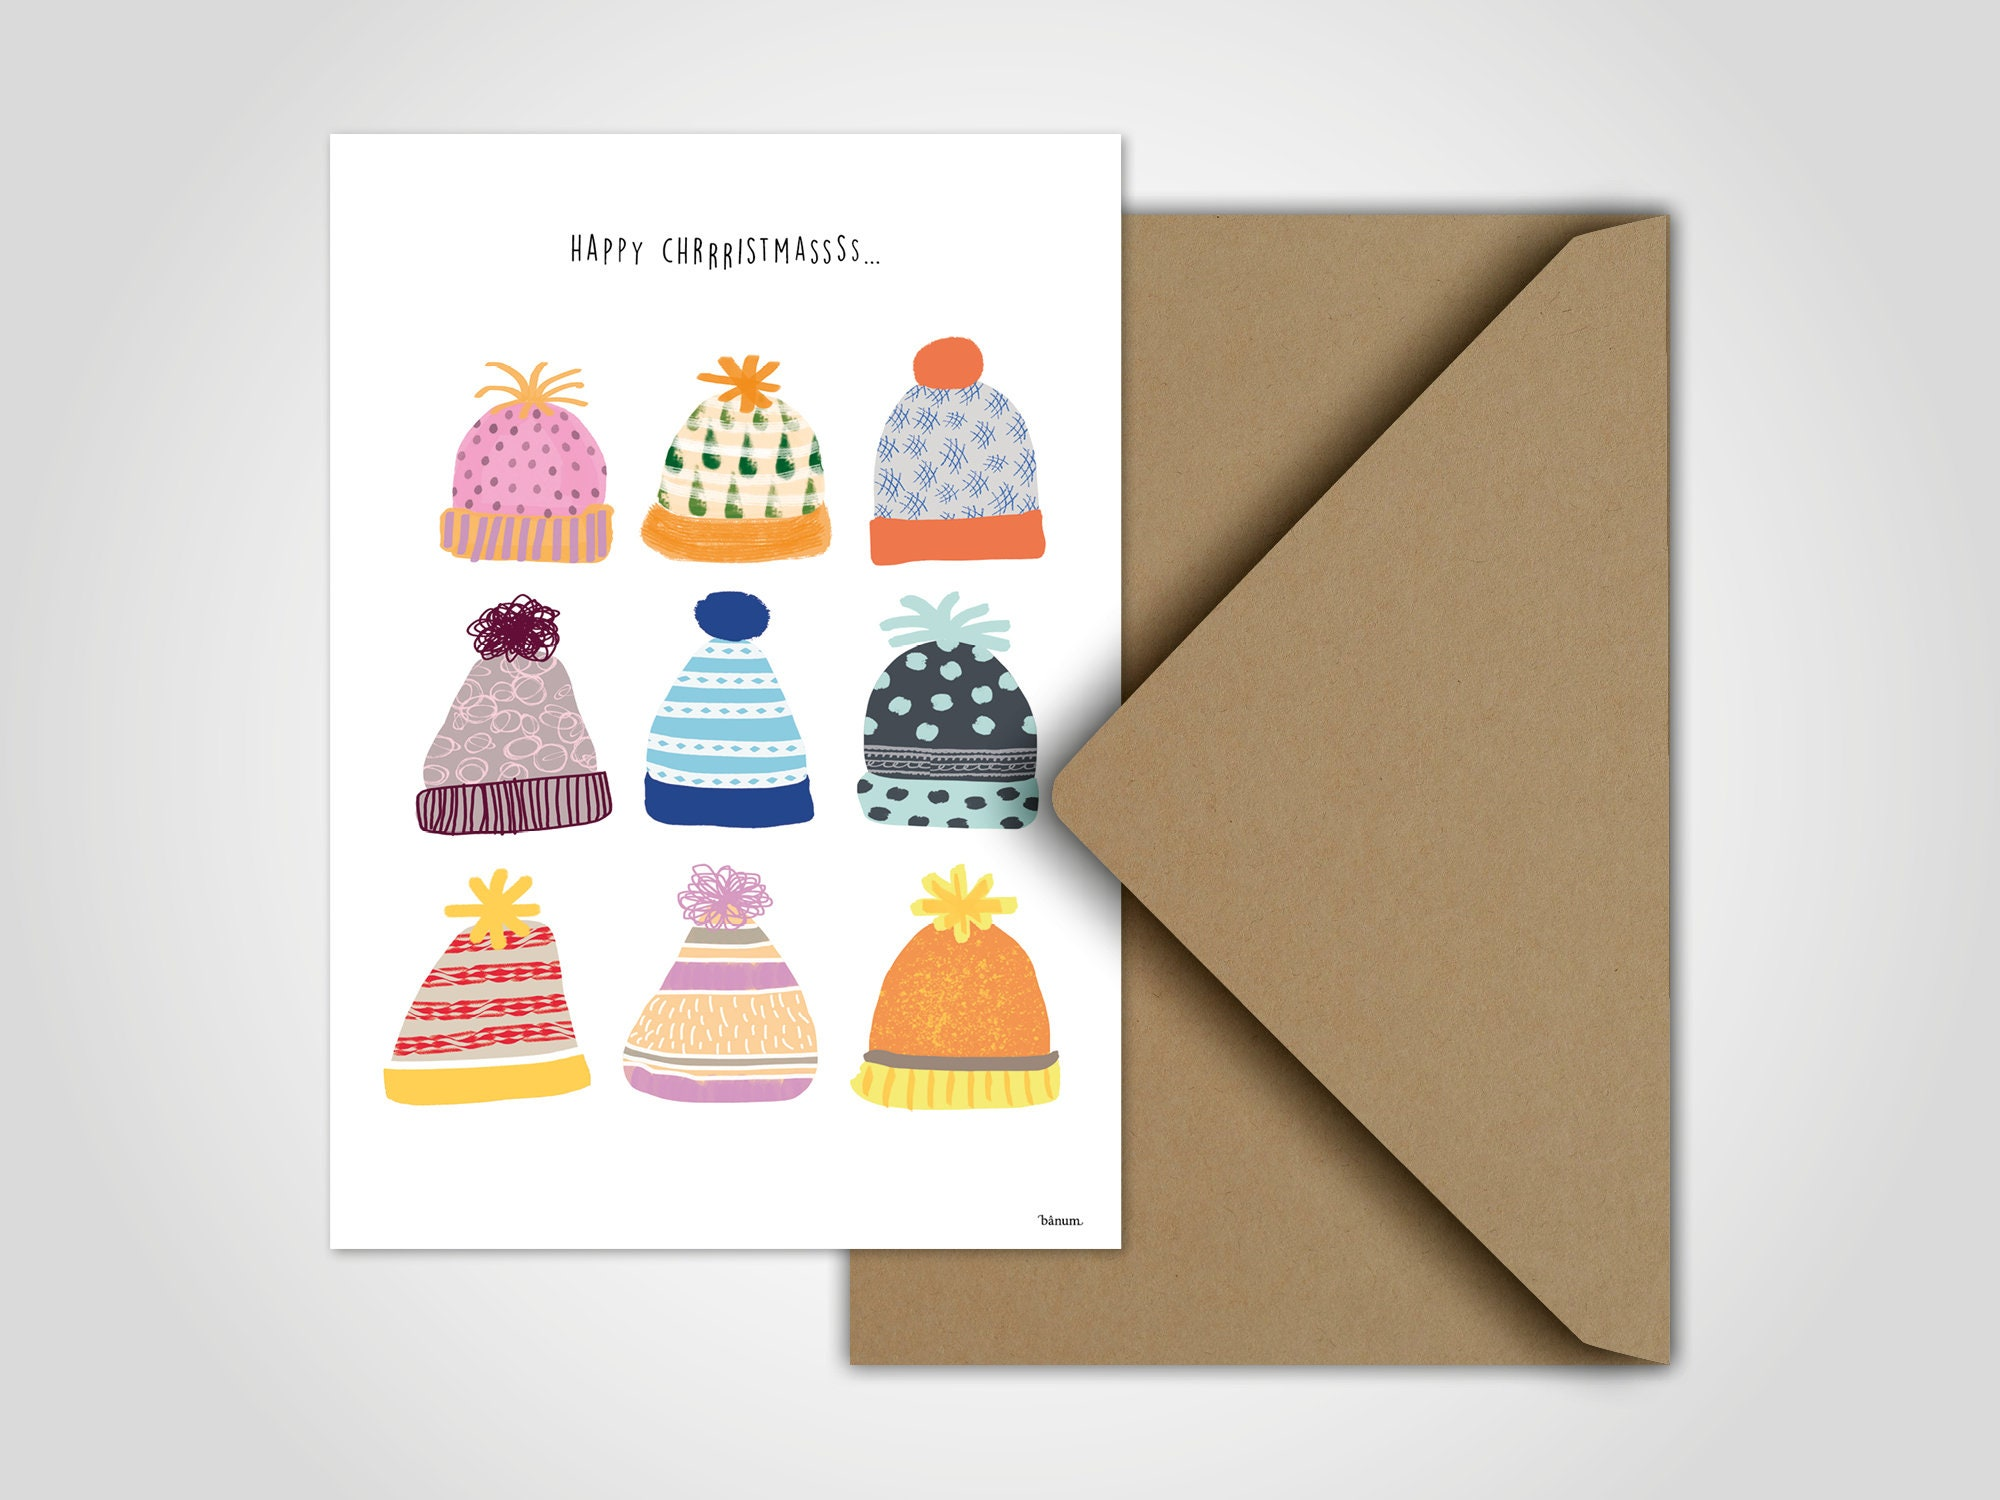 10x Marble Design Greeting Cards Blank Inside W// Envelop Thanksgiving Favors